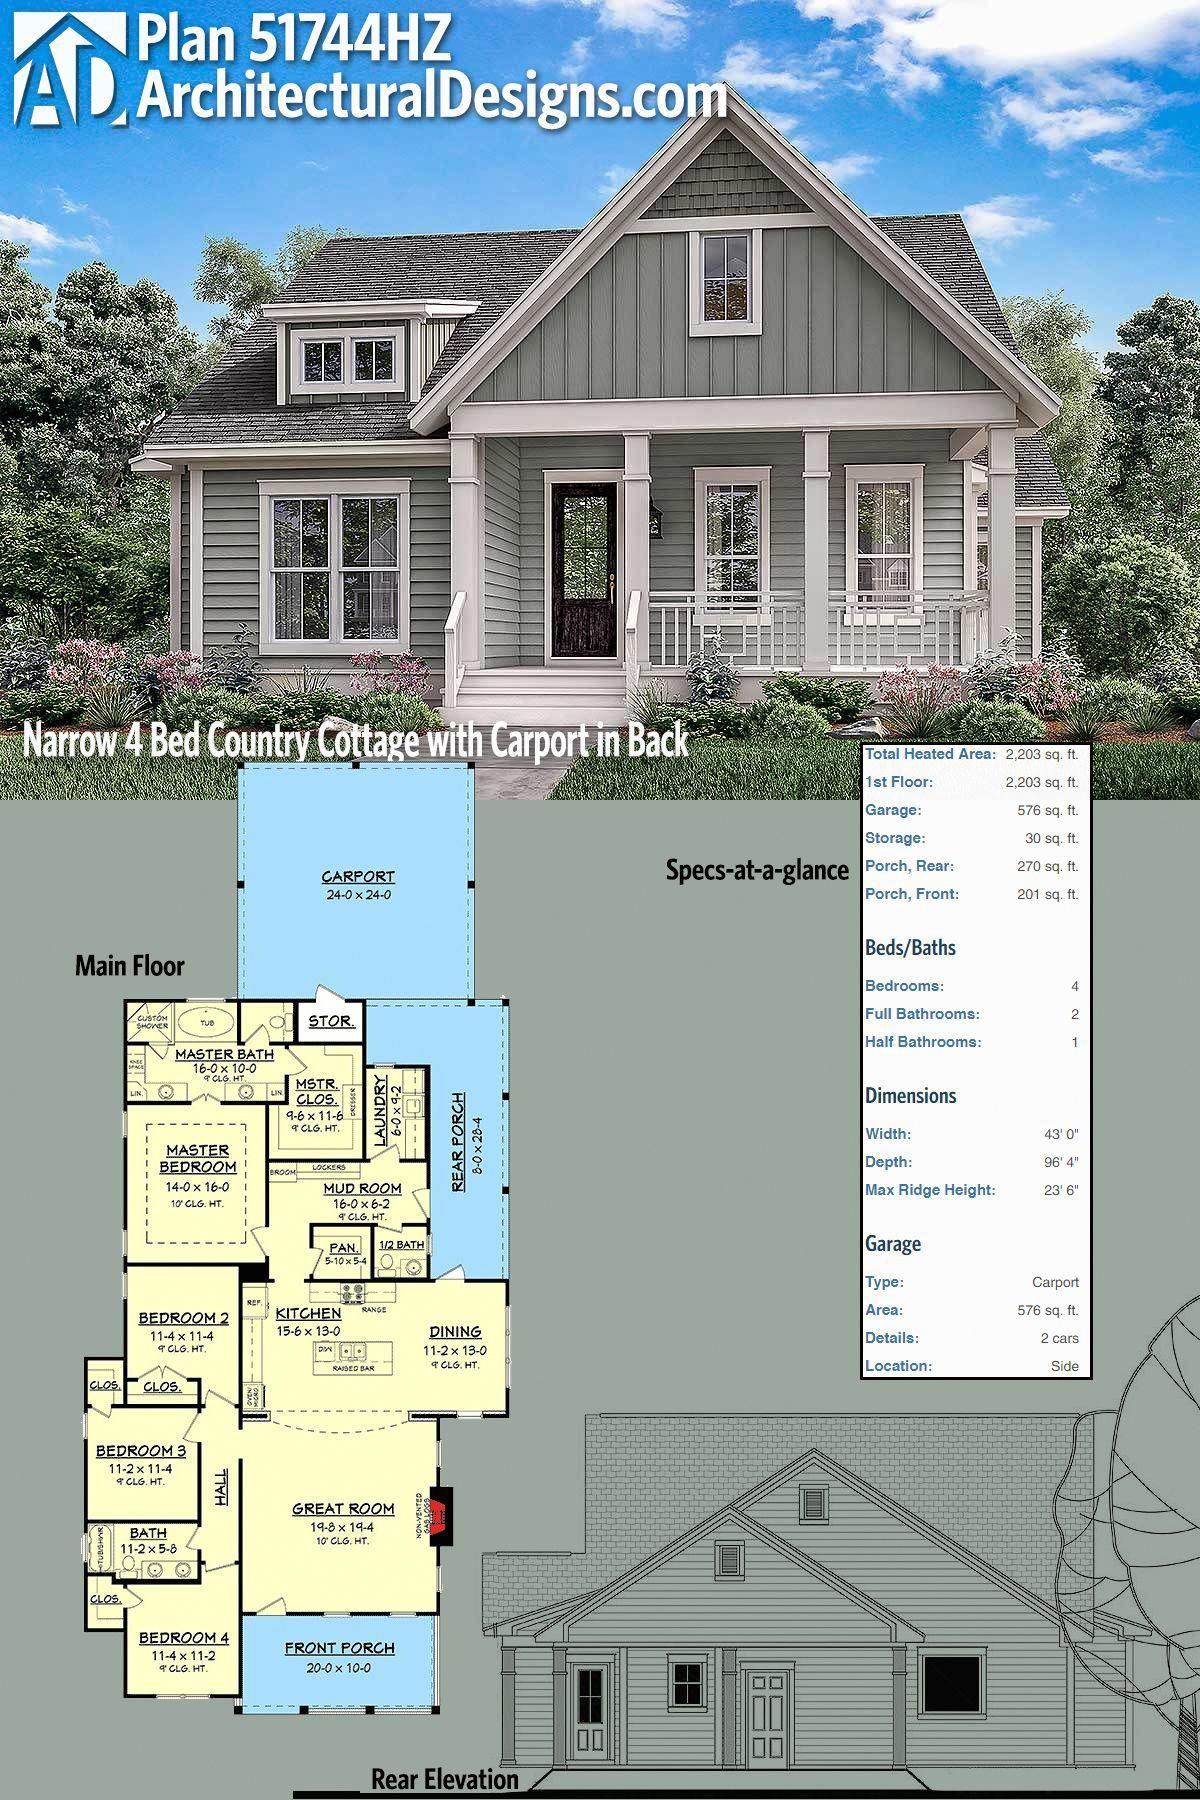 Check out these fantastic plans for rustic